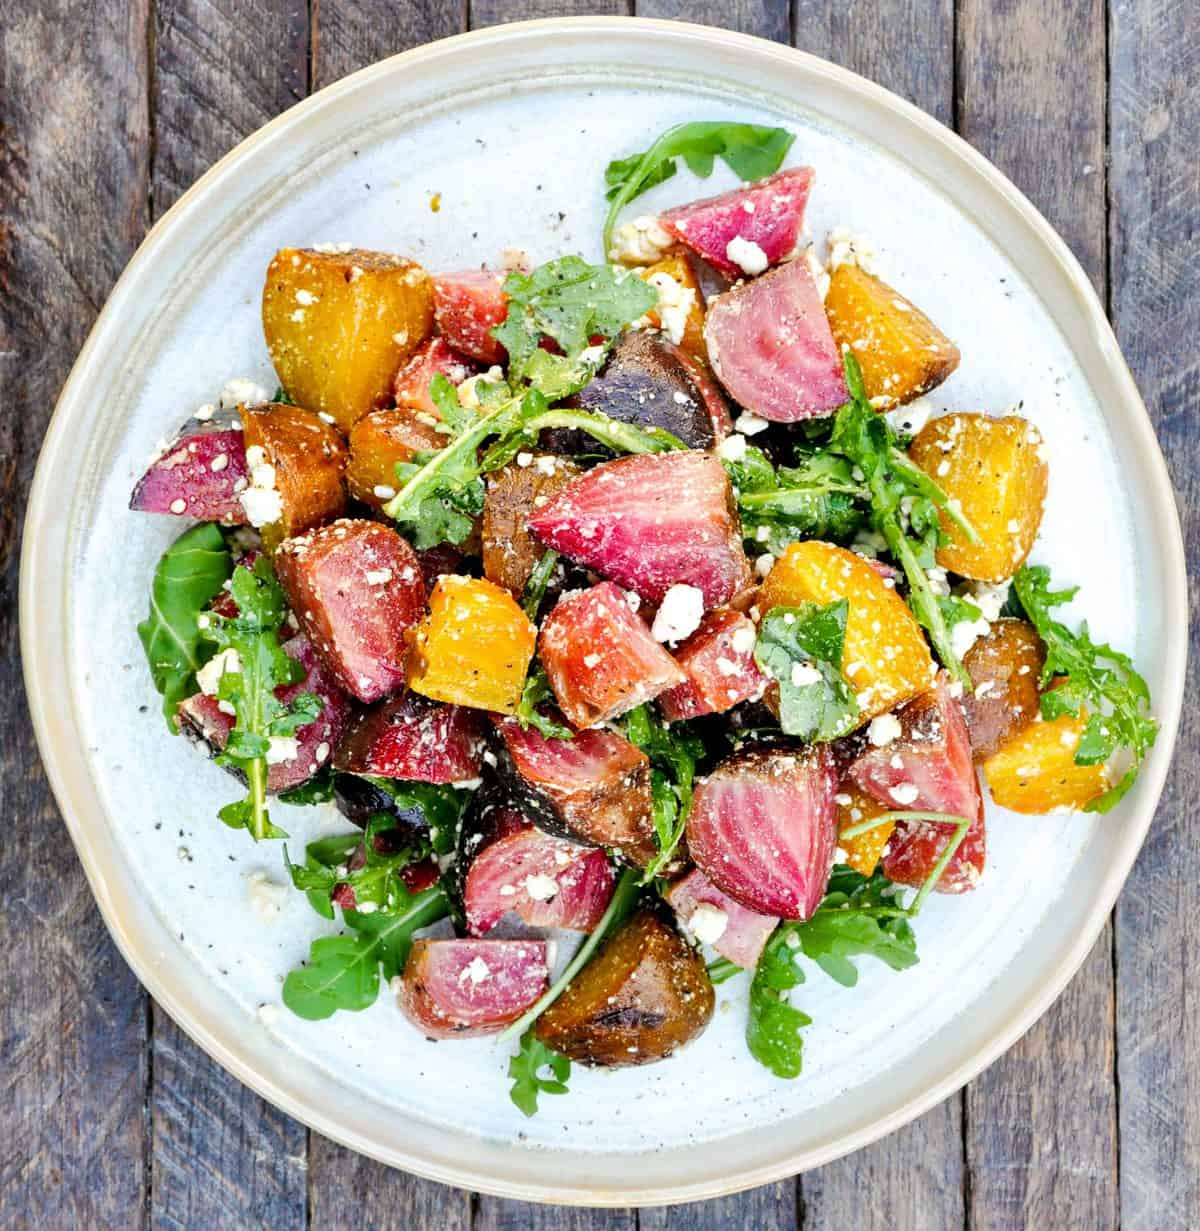 Roasted Beet Salad with Arugula and Olive Oil Dressing